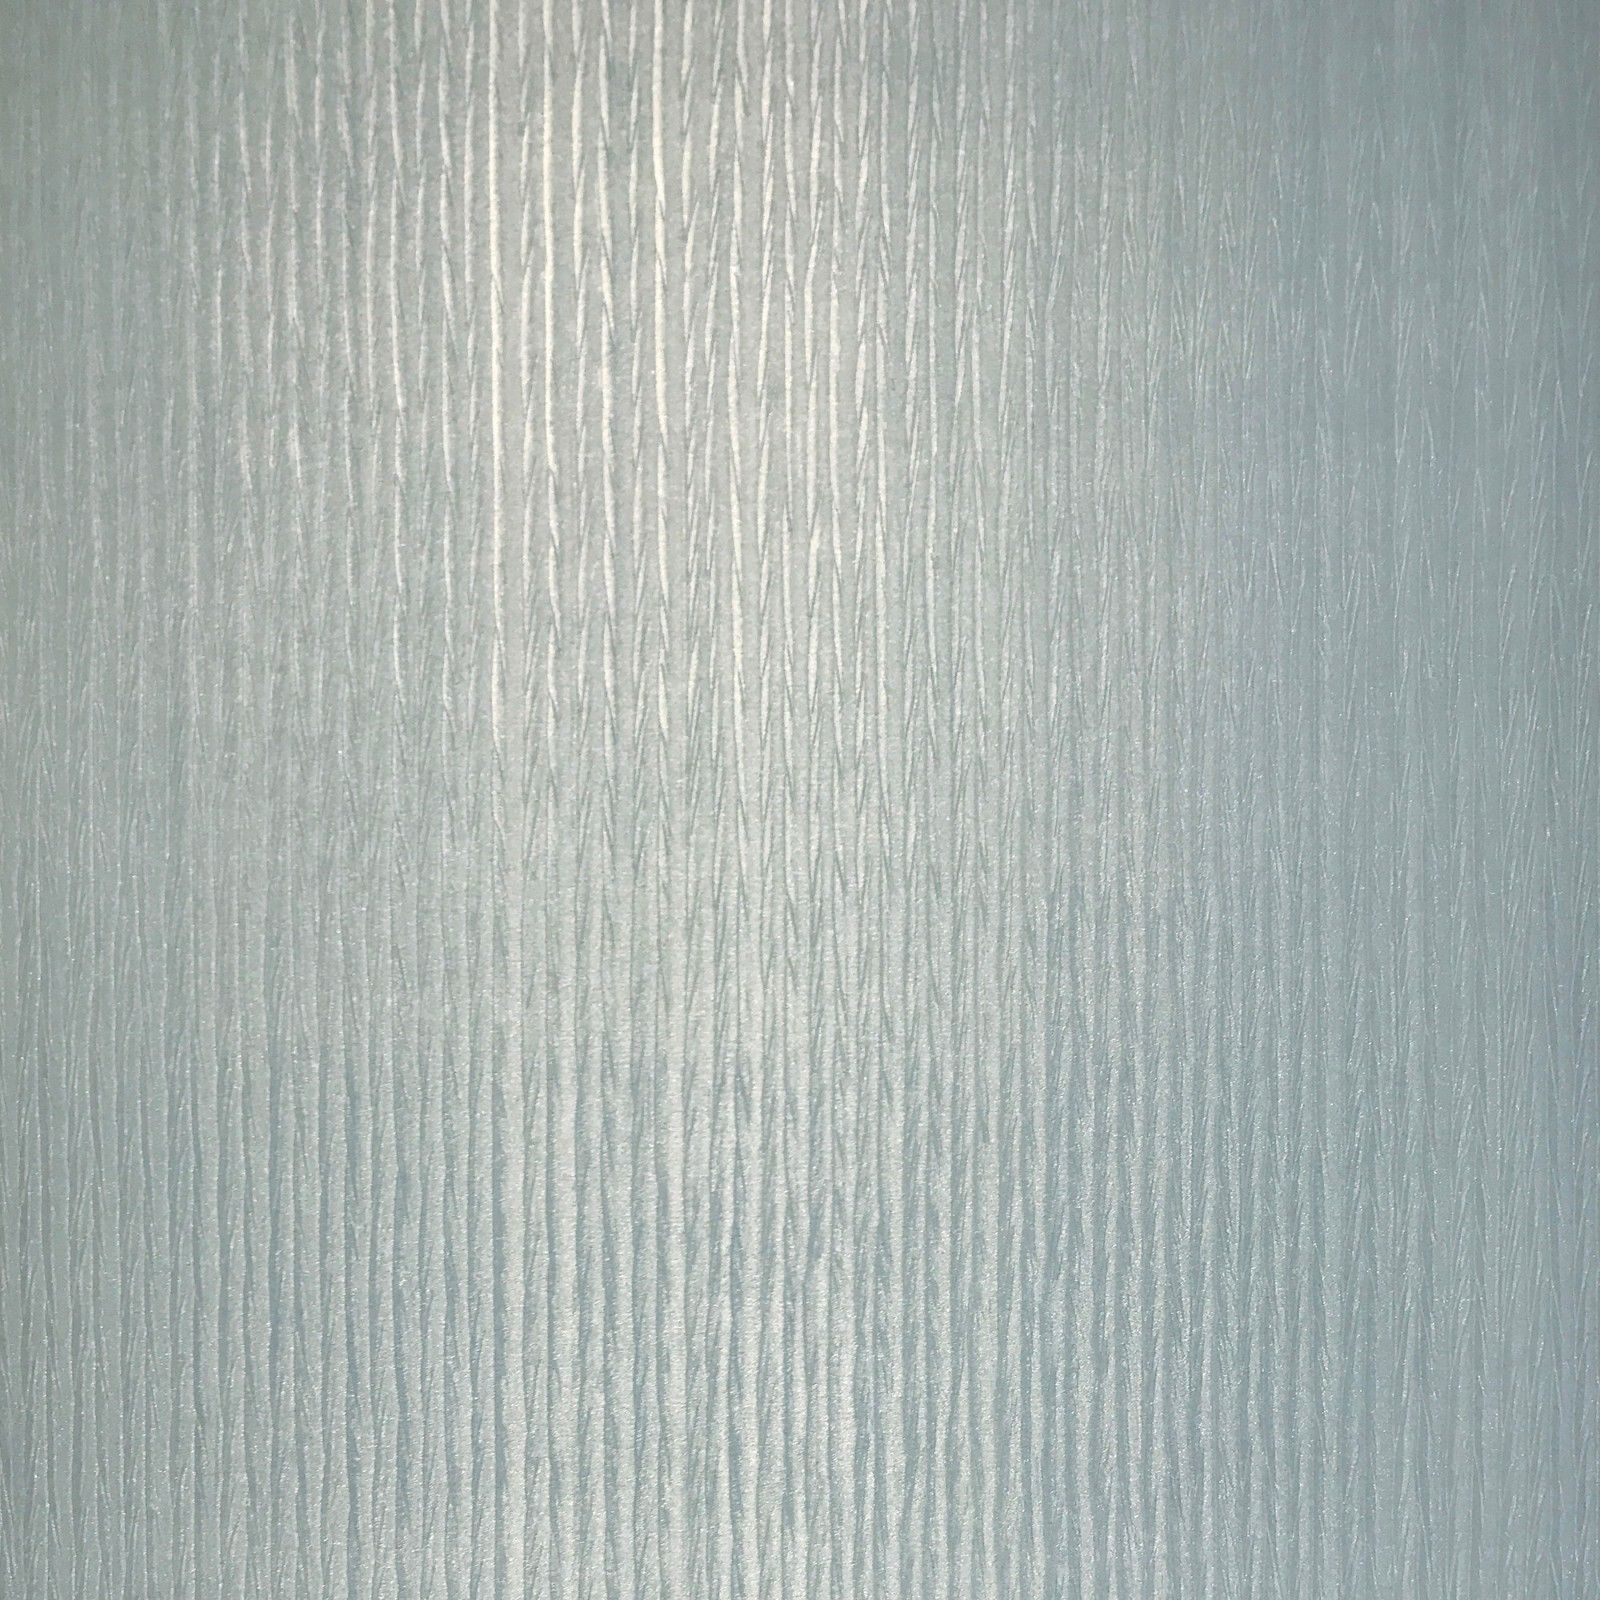 Wallpaper Blue Silver Metallic Textured Lines Modern Plain Wall Coverings